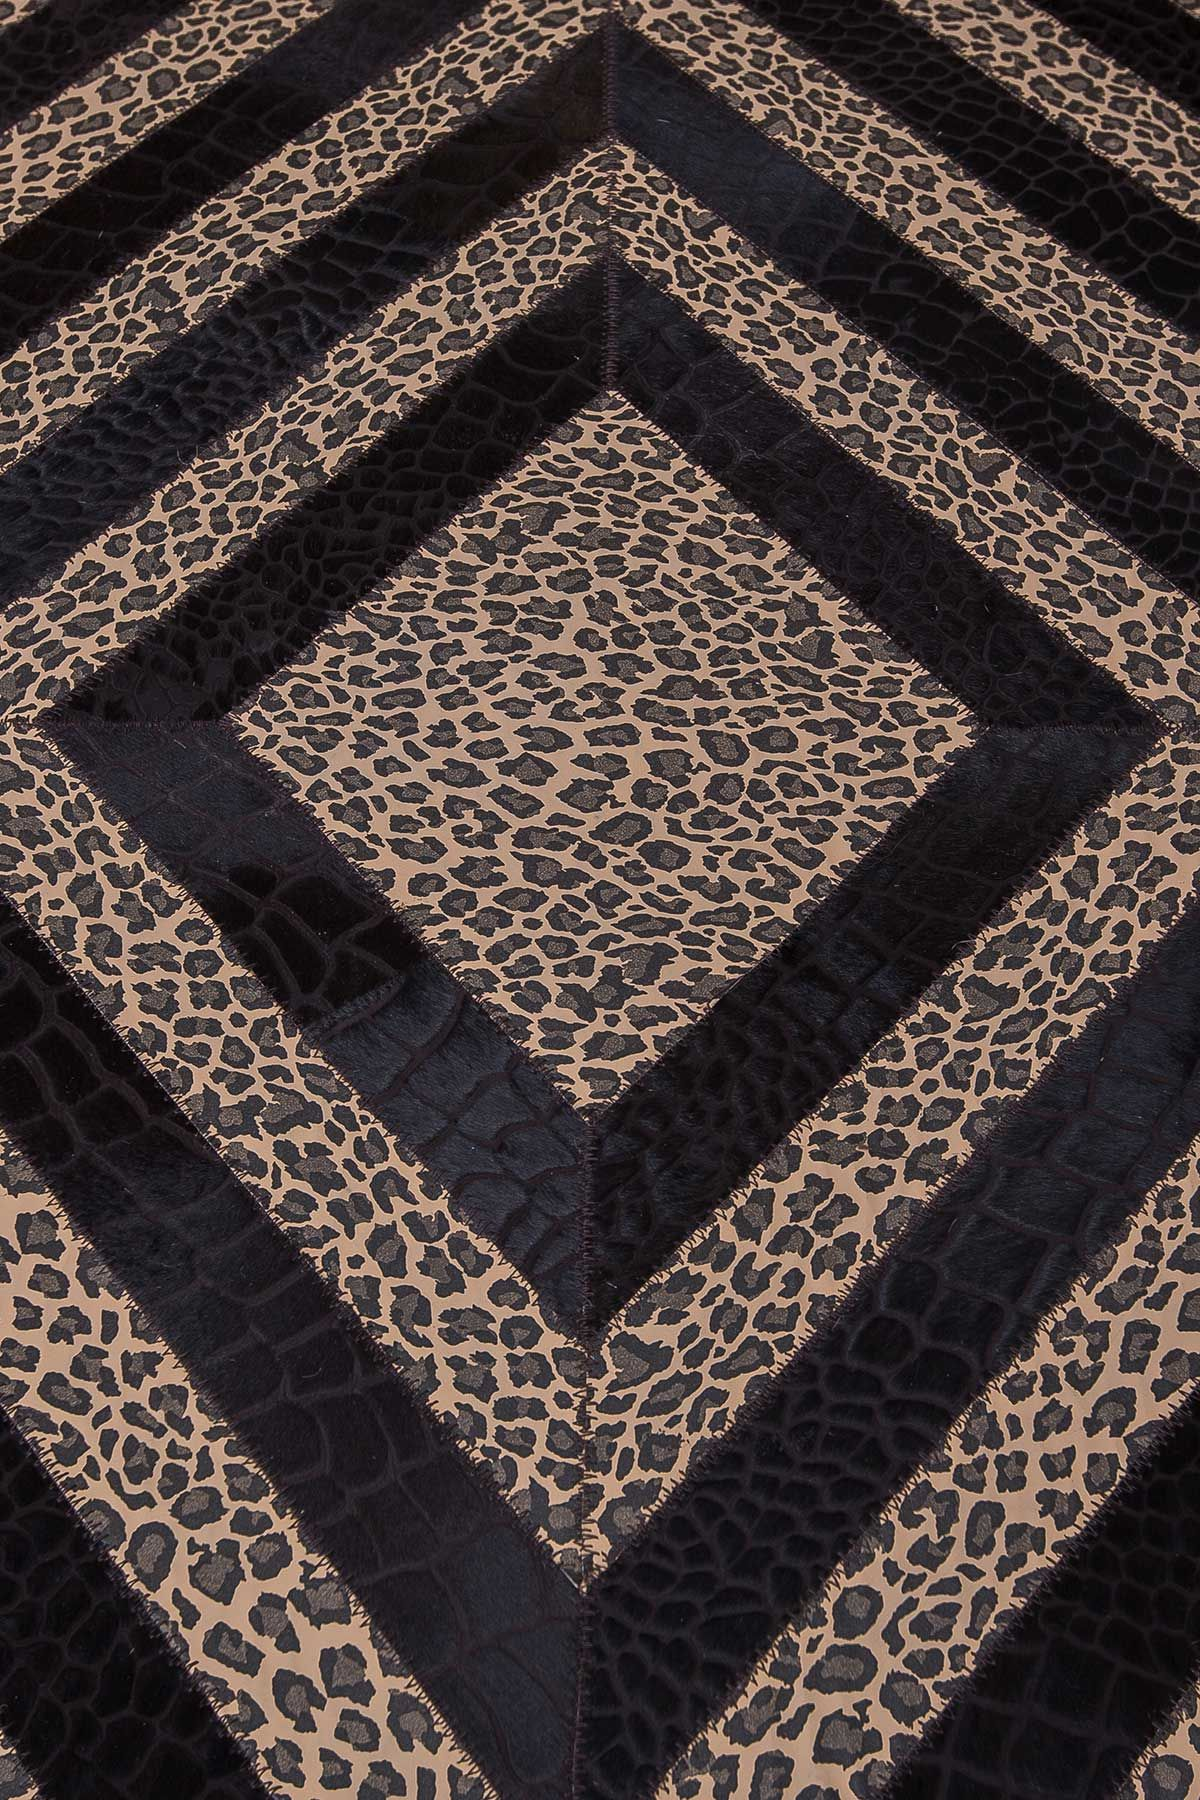 Erdogan Deri Leather Rug With Leopard Pattern Brown